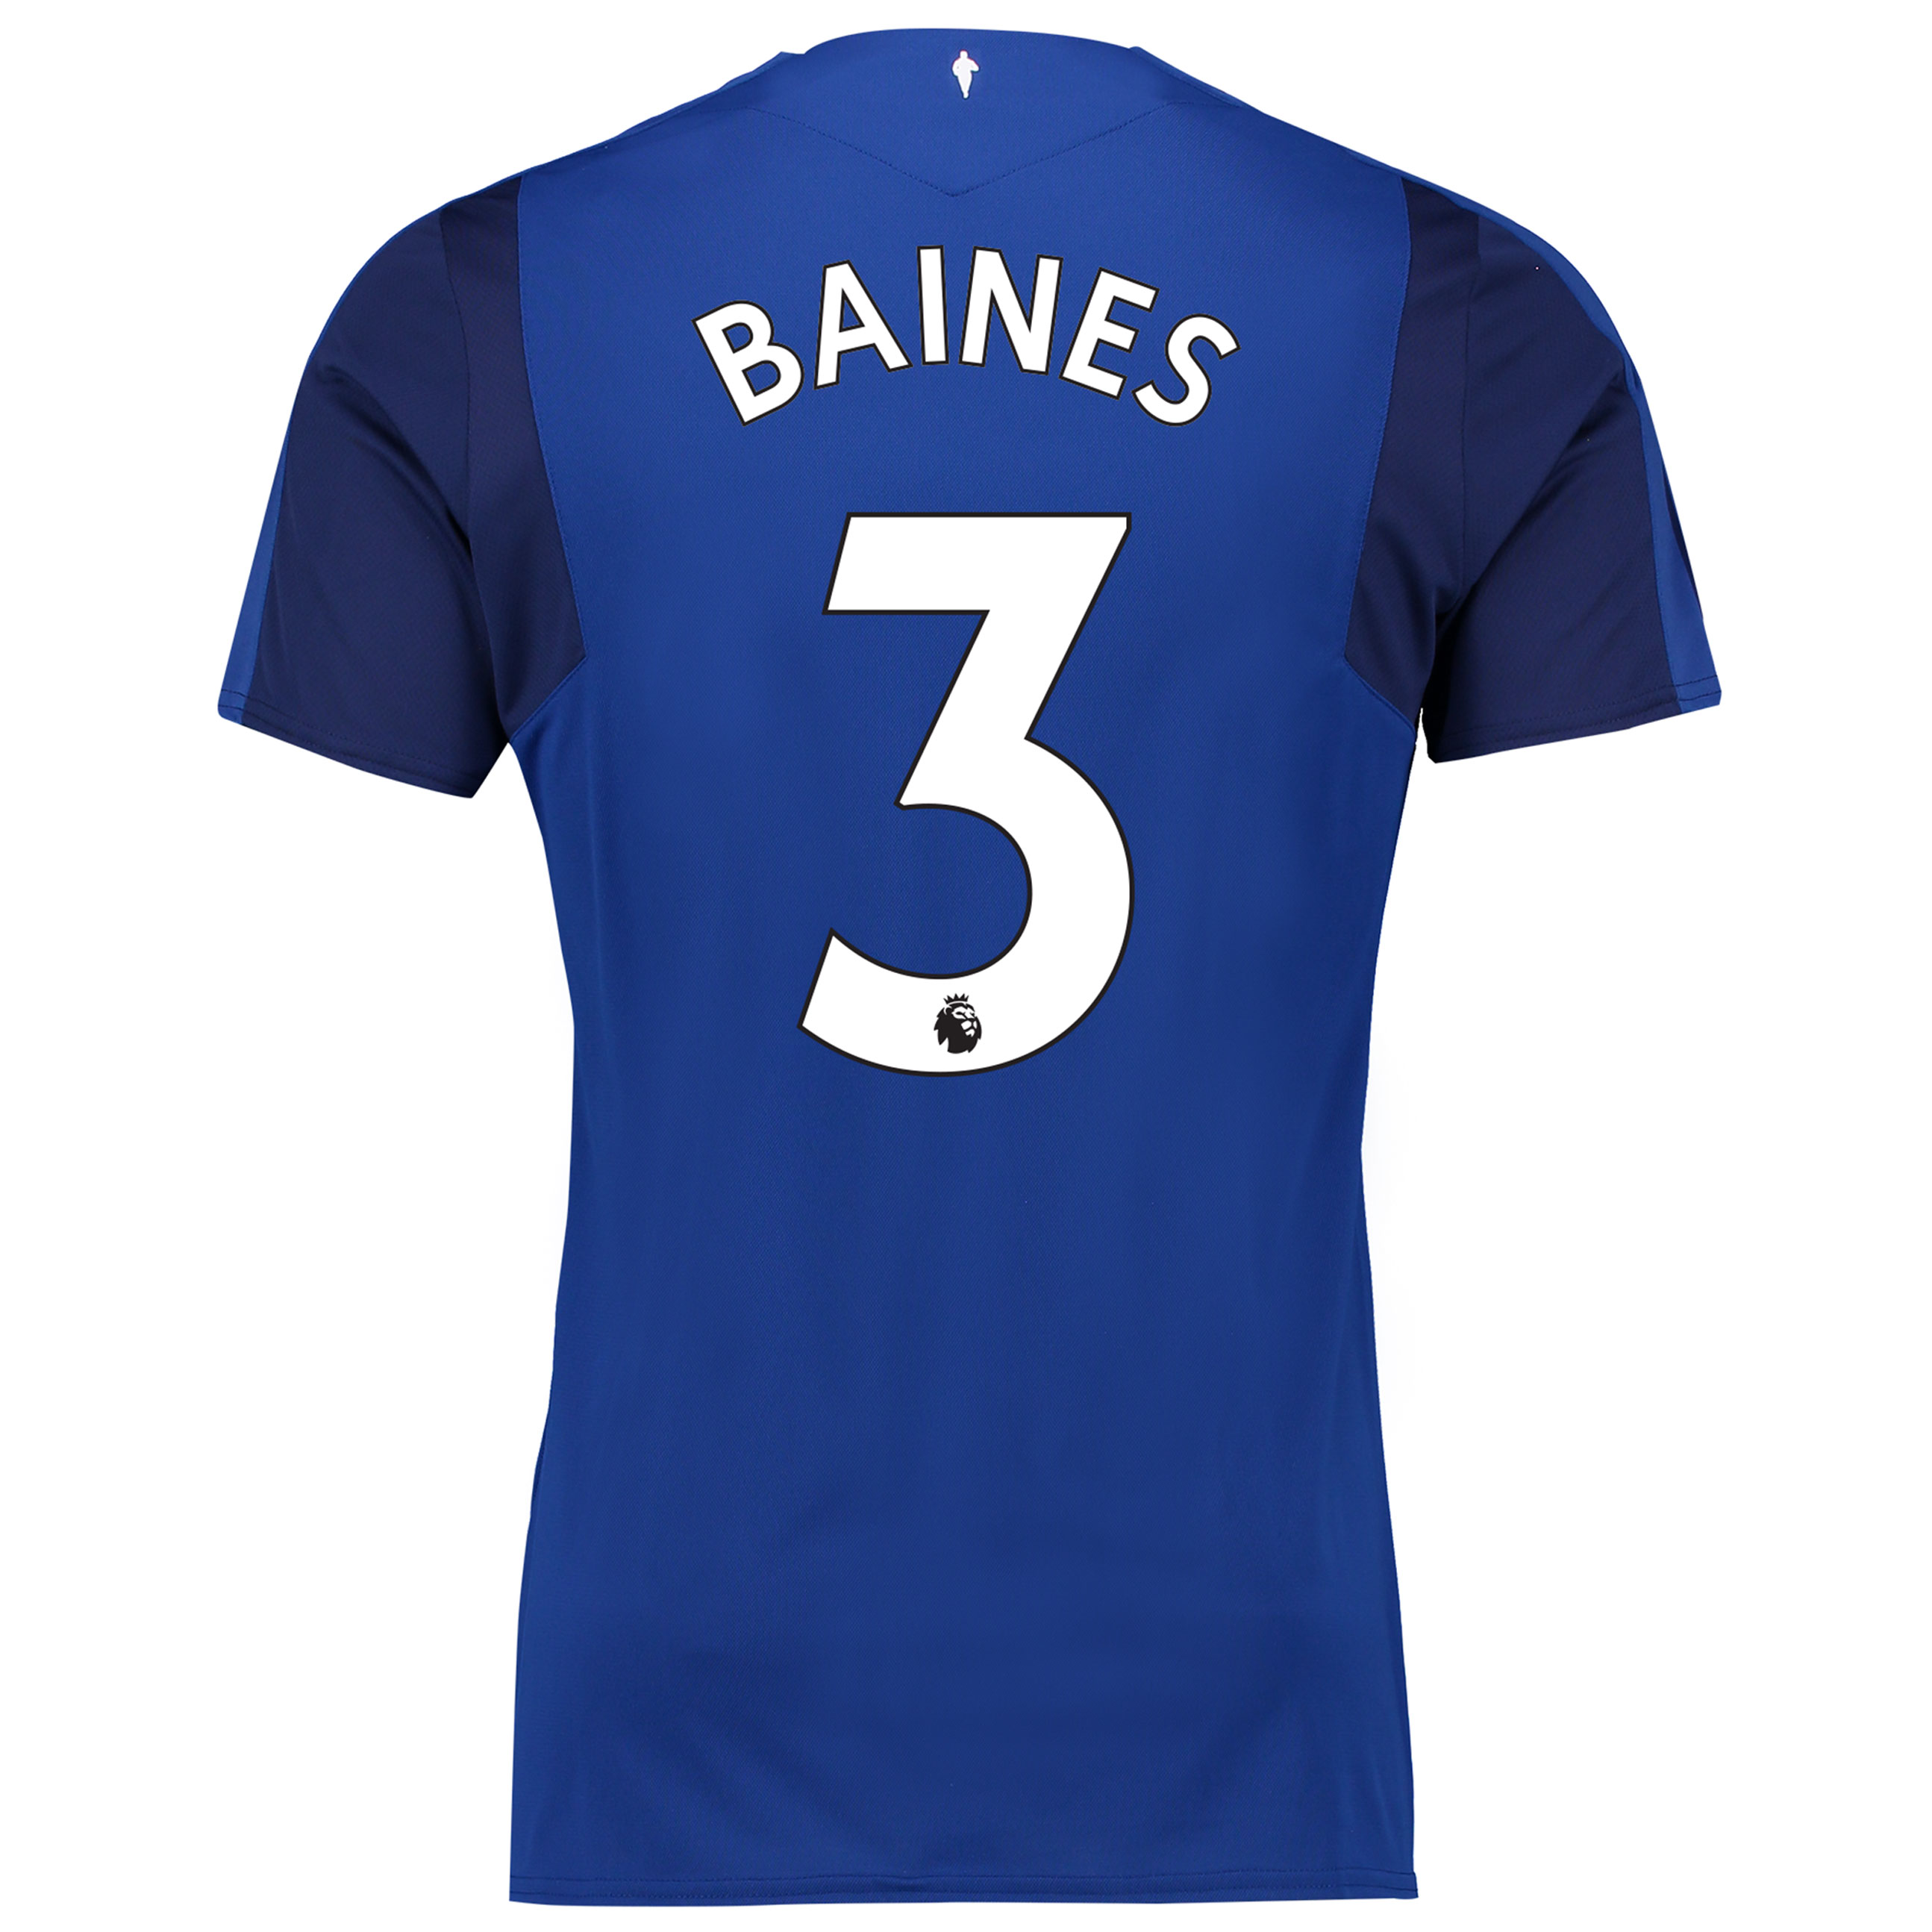 Everton Home Shirt 2017/18 - Junior with Baines 3 printing